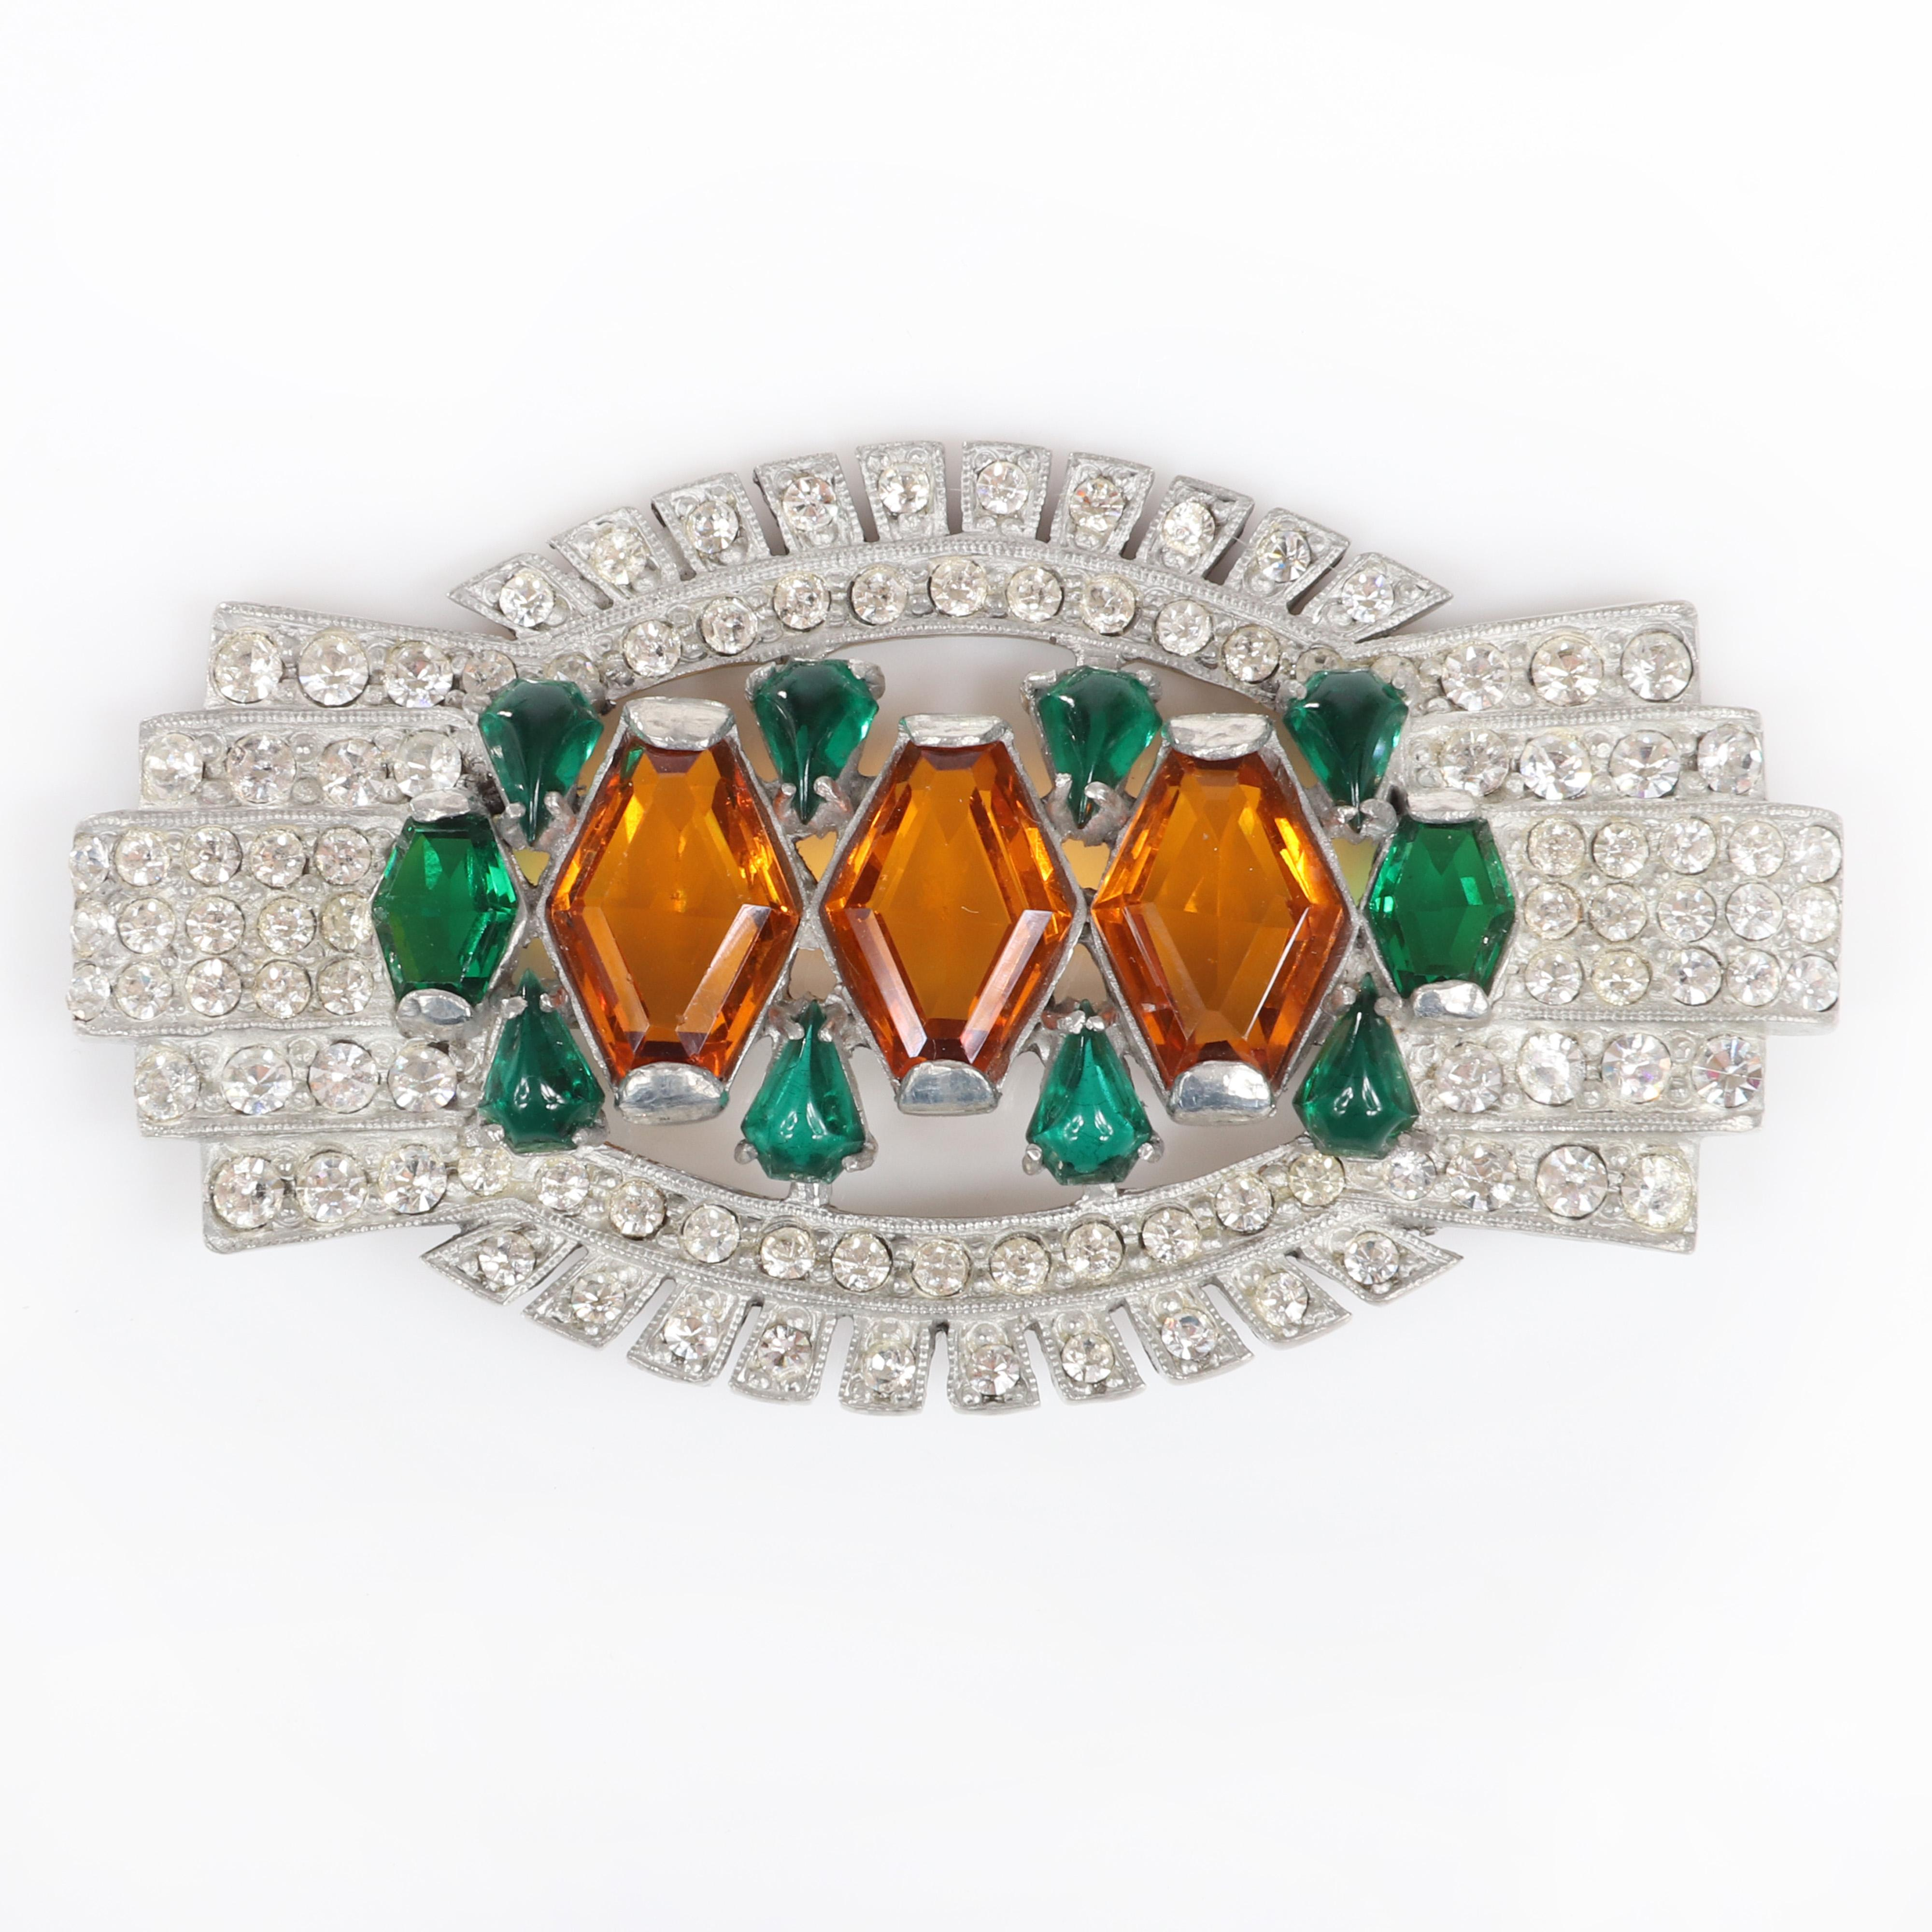 "Eisenberg Art Deco brooch in silver pot metal and three large topaz crystals surrounded by green teardrop stones and pave with openwork highlights, mid to late-1930s. 1 7/8"" x 3 5/8"""